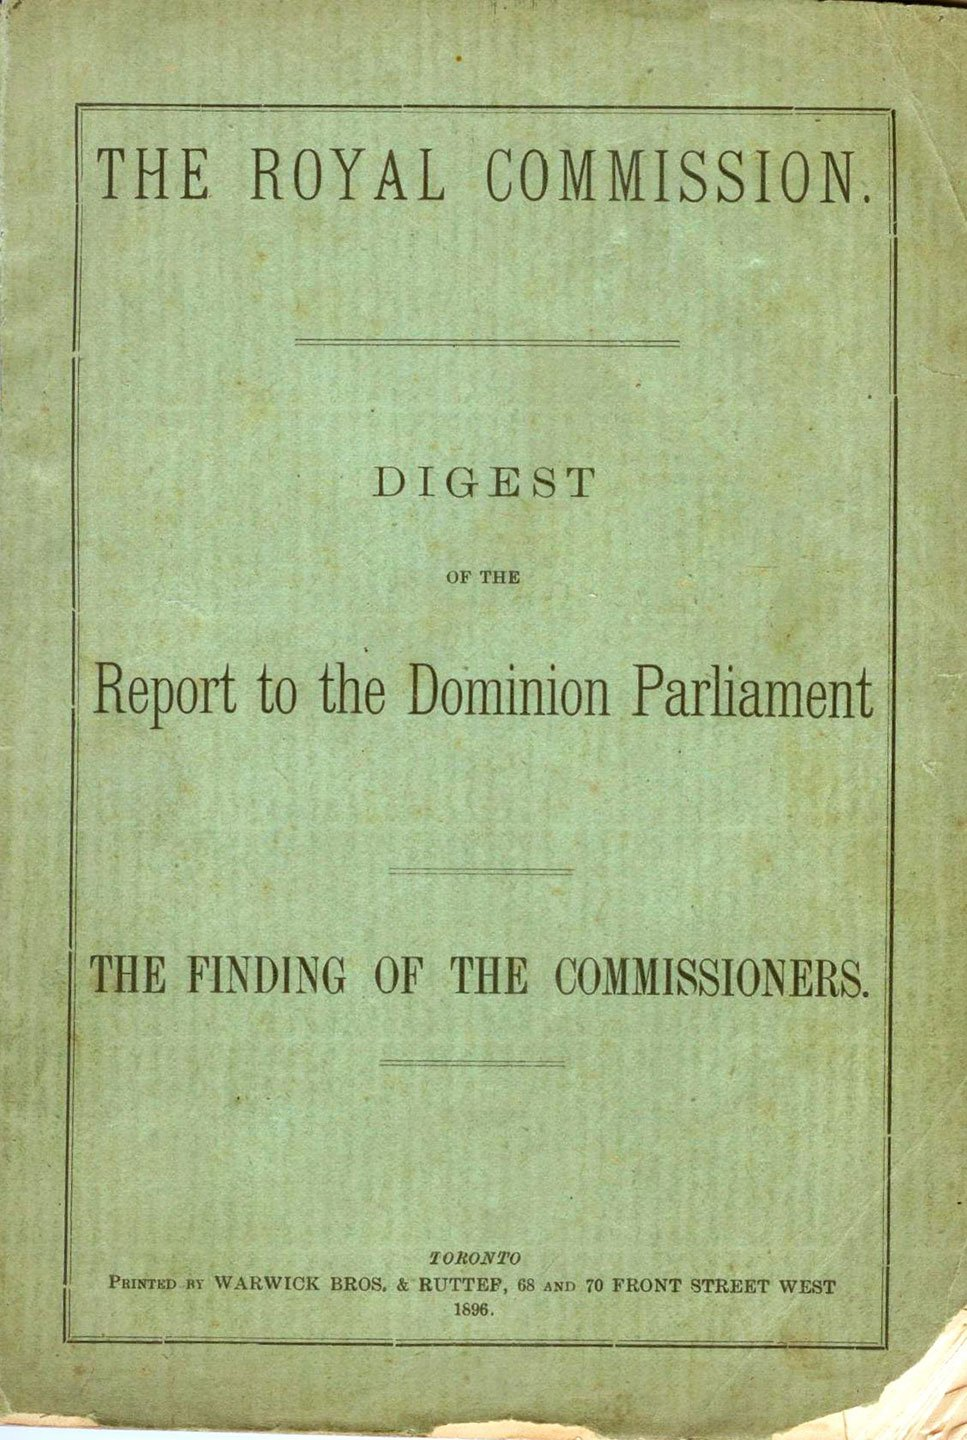 Digest of the Report to the Dominion Parliament. The Finding of the Commissioners